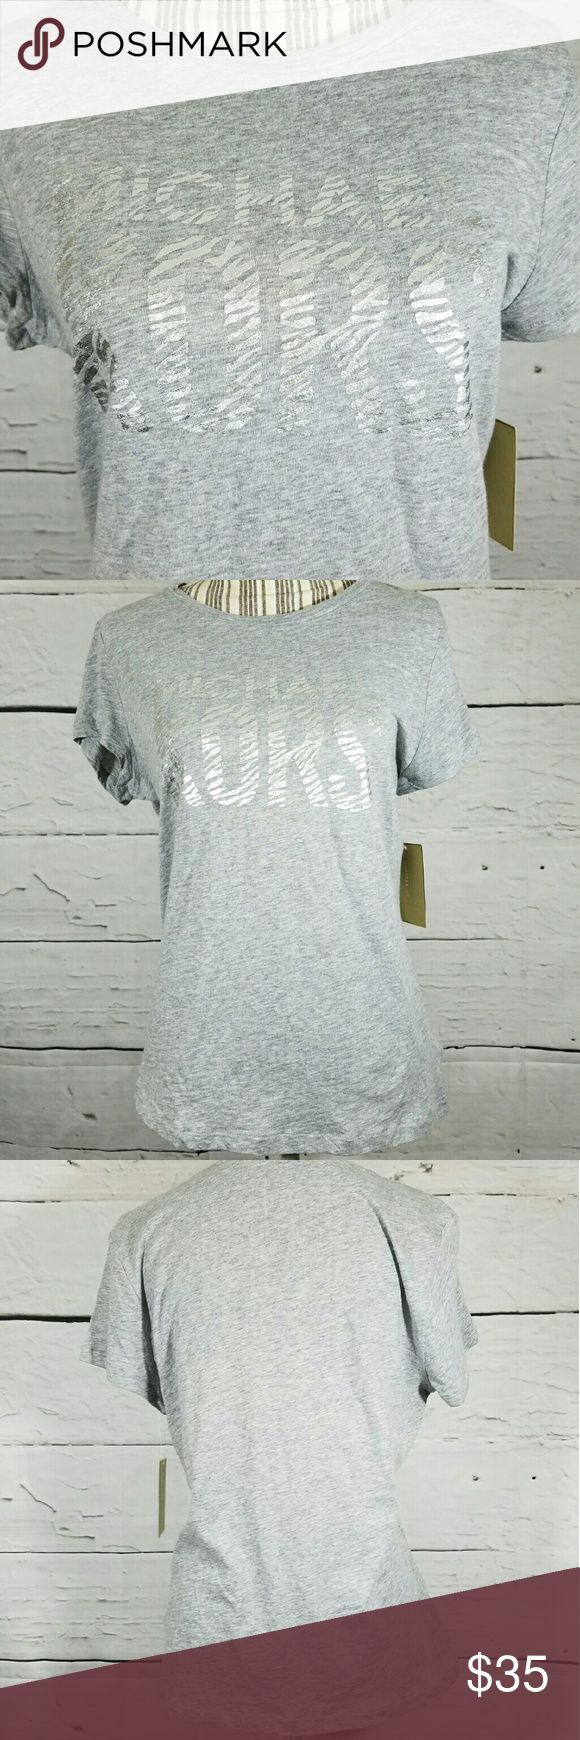 NWT Michael Kors Short Sleeve 100% Cotton Tshirt NWT Michael Kors Short Sleeve 100% Cotton Tshirt Tee Gray Metallic Silver Large  20 inches pit to pit.  26 inches long.    LB Michael Kors Tops Tees - Short Sleeve